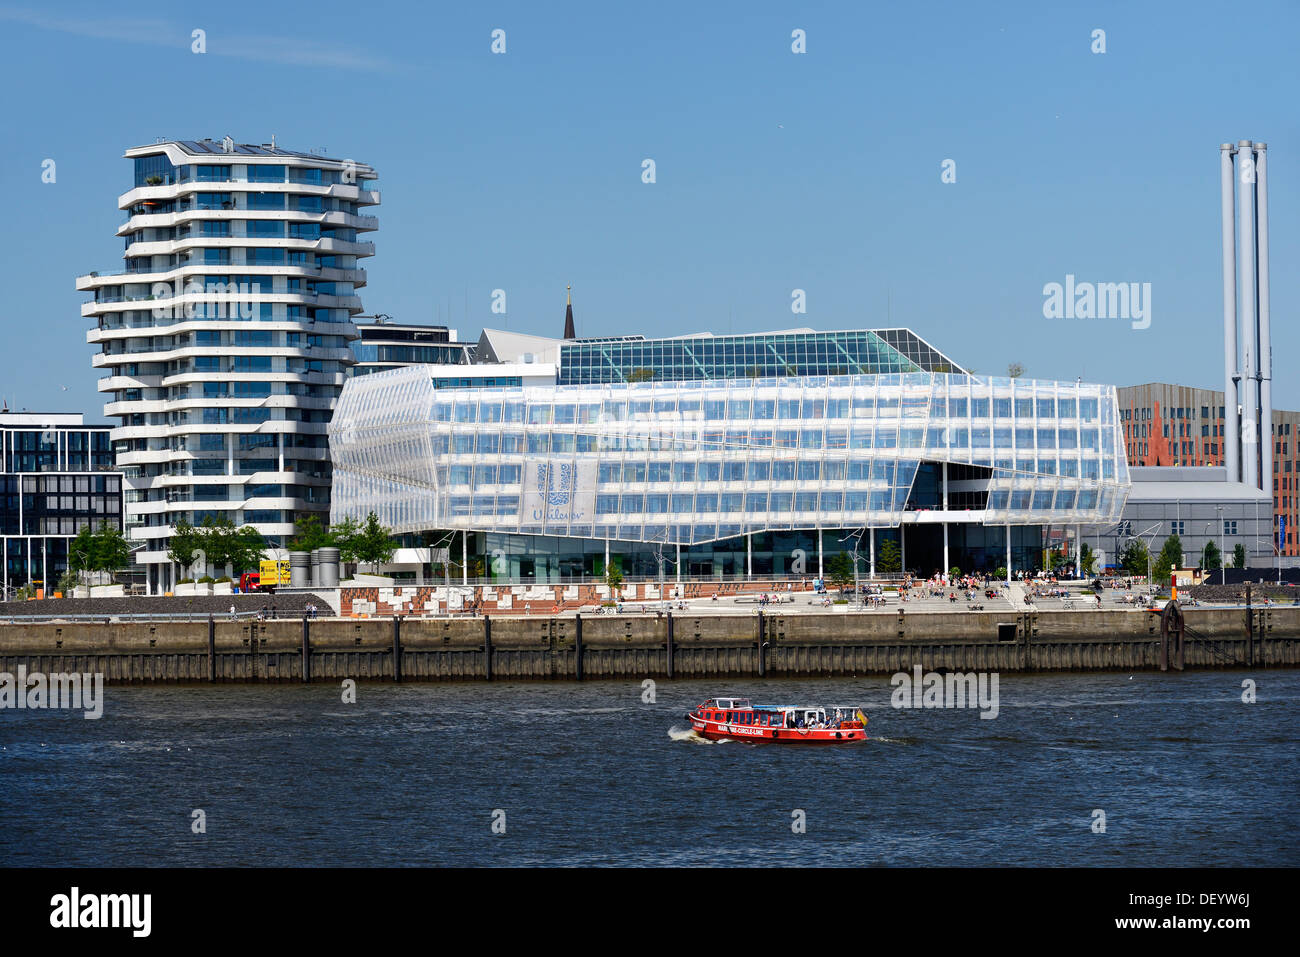 Marco Polo Tower and the Unilever headquarters on Strandkai area, Hafencity district, Hamburg - Stock Image